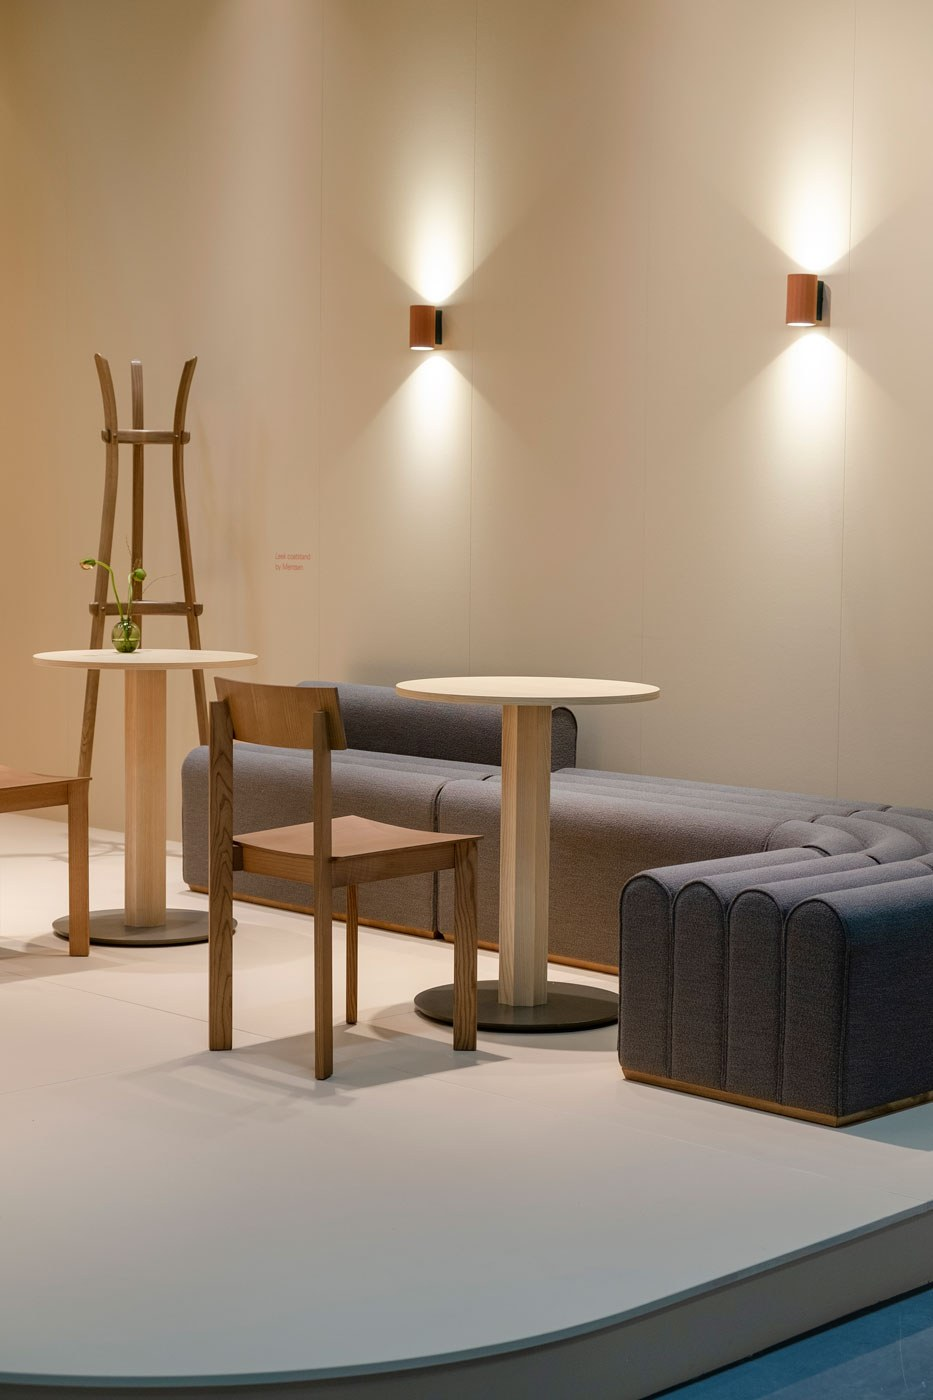 Arkad BL, Arkad L, Arkad Corner, Arkad S with OC tables, Candid chairs and Leek coat stand